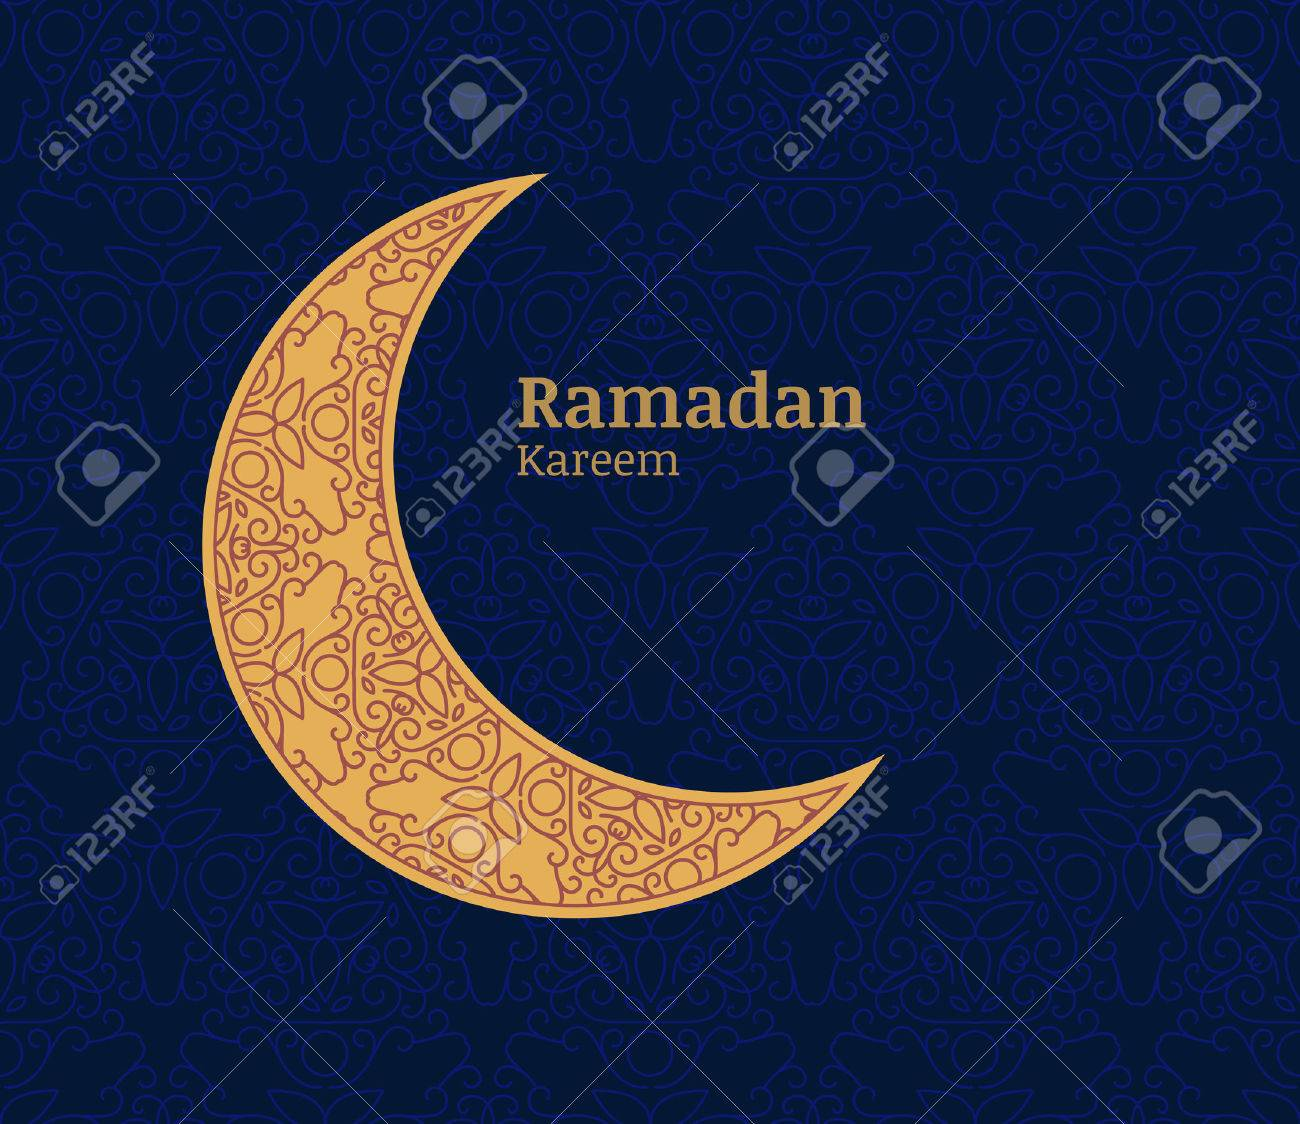 Ramadan Greeting Card With Golden Decorative Moon And Floral